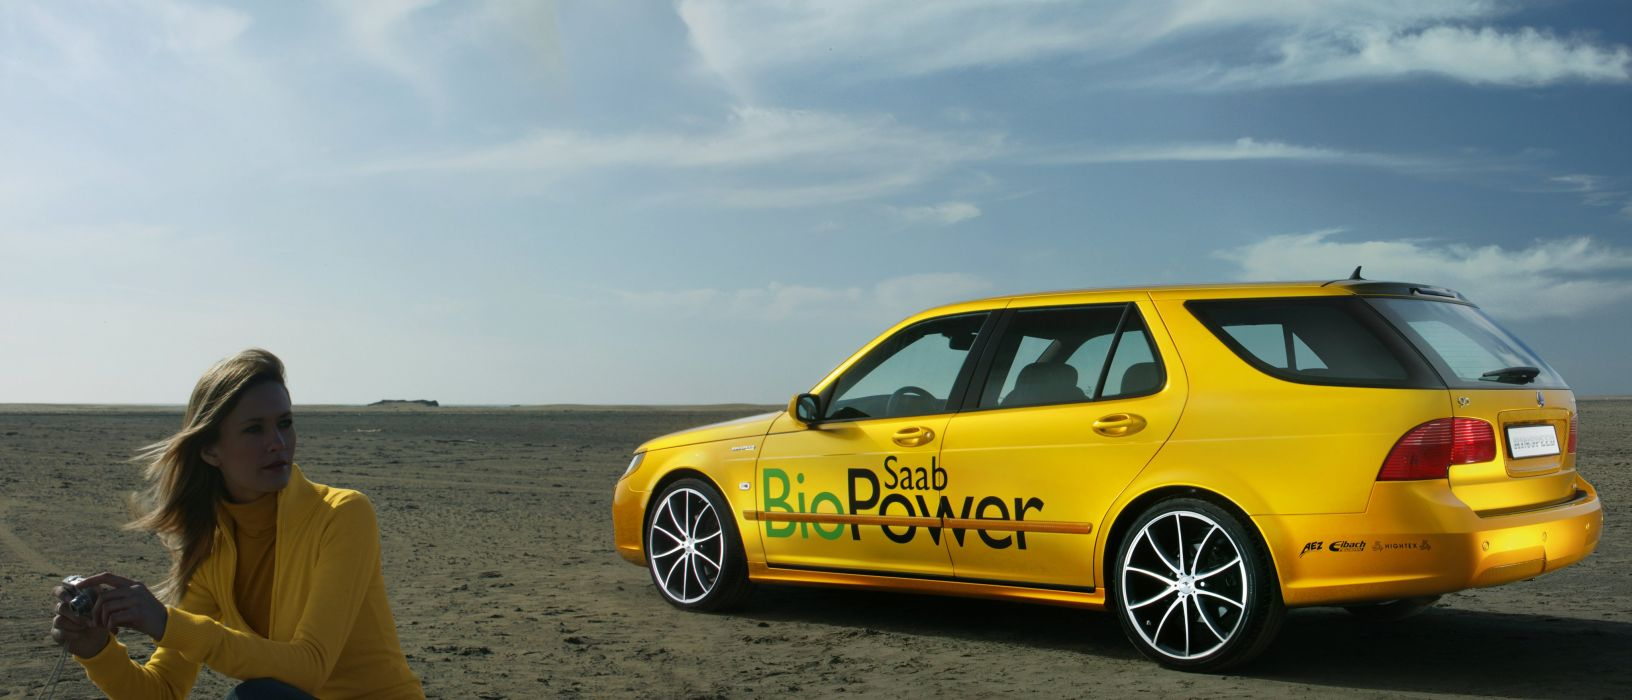 2007 Rinspeed Saab 9-5 BioPower Concept stationwagon wallpaper